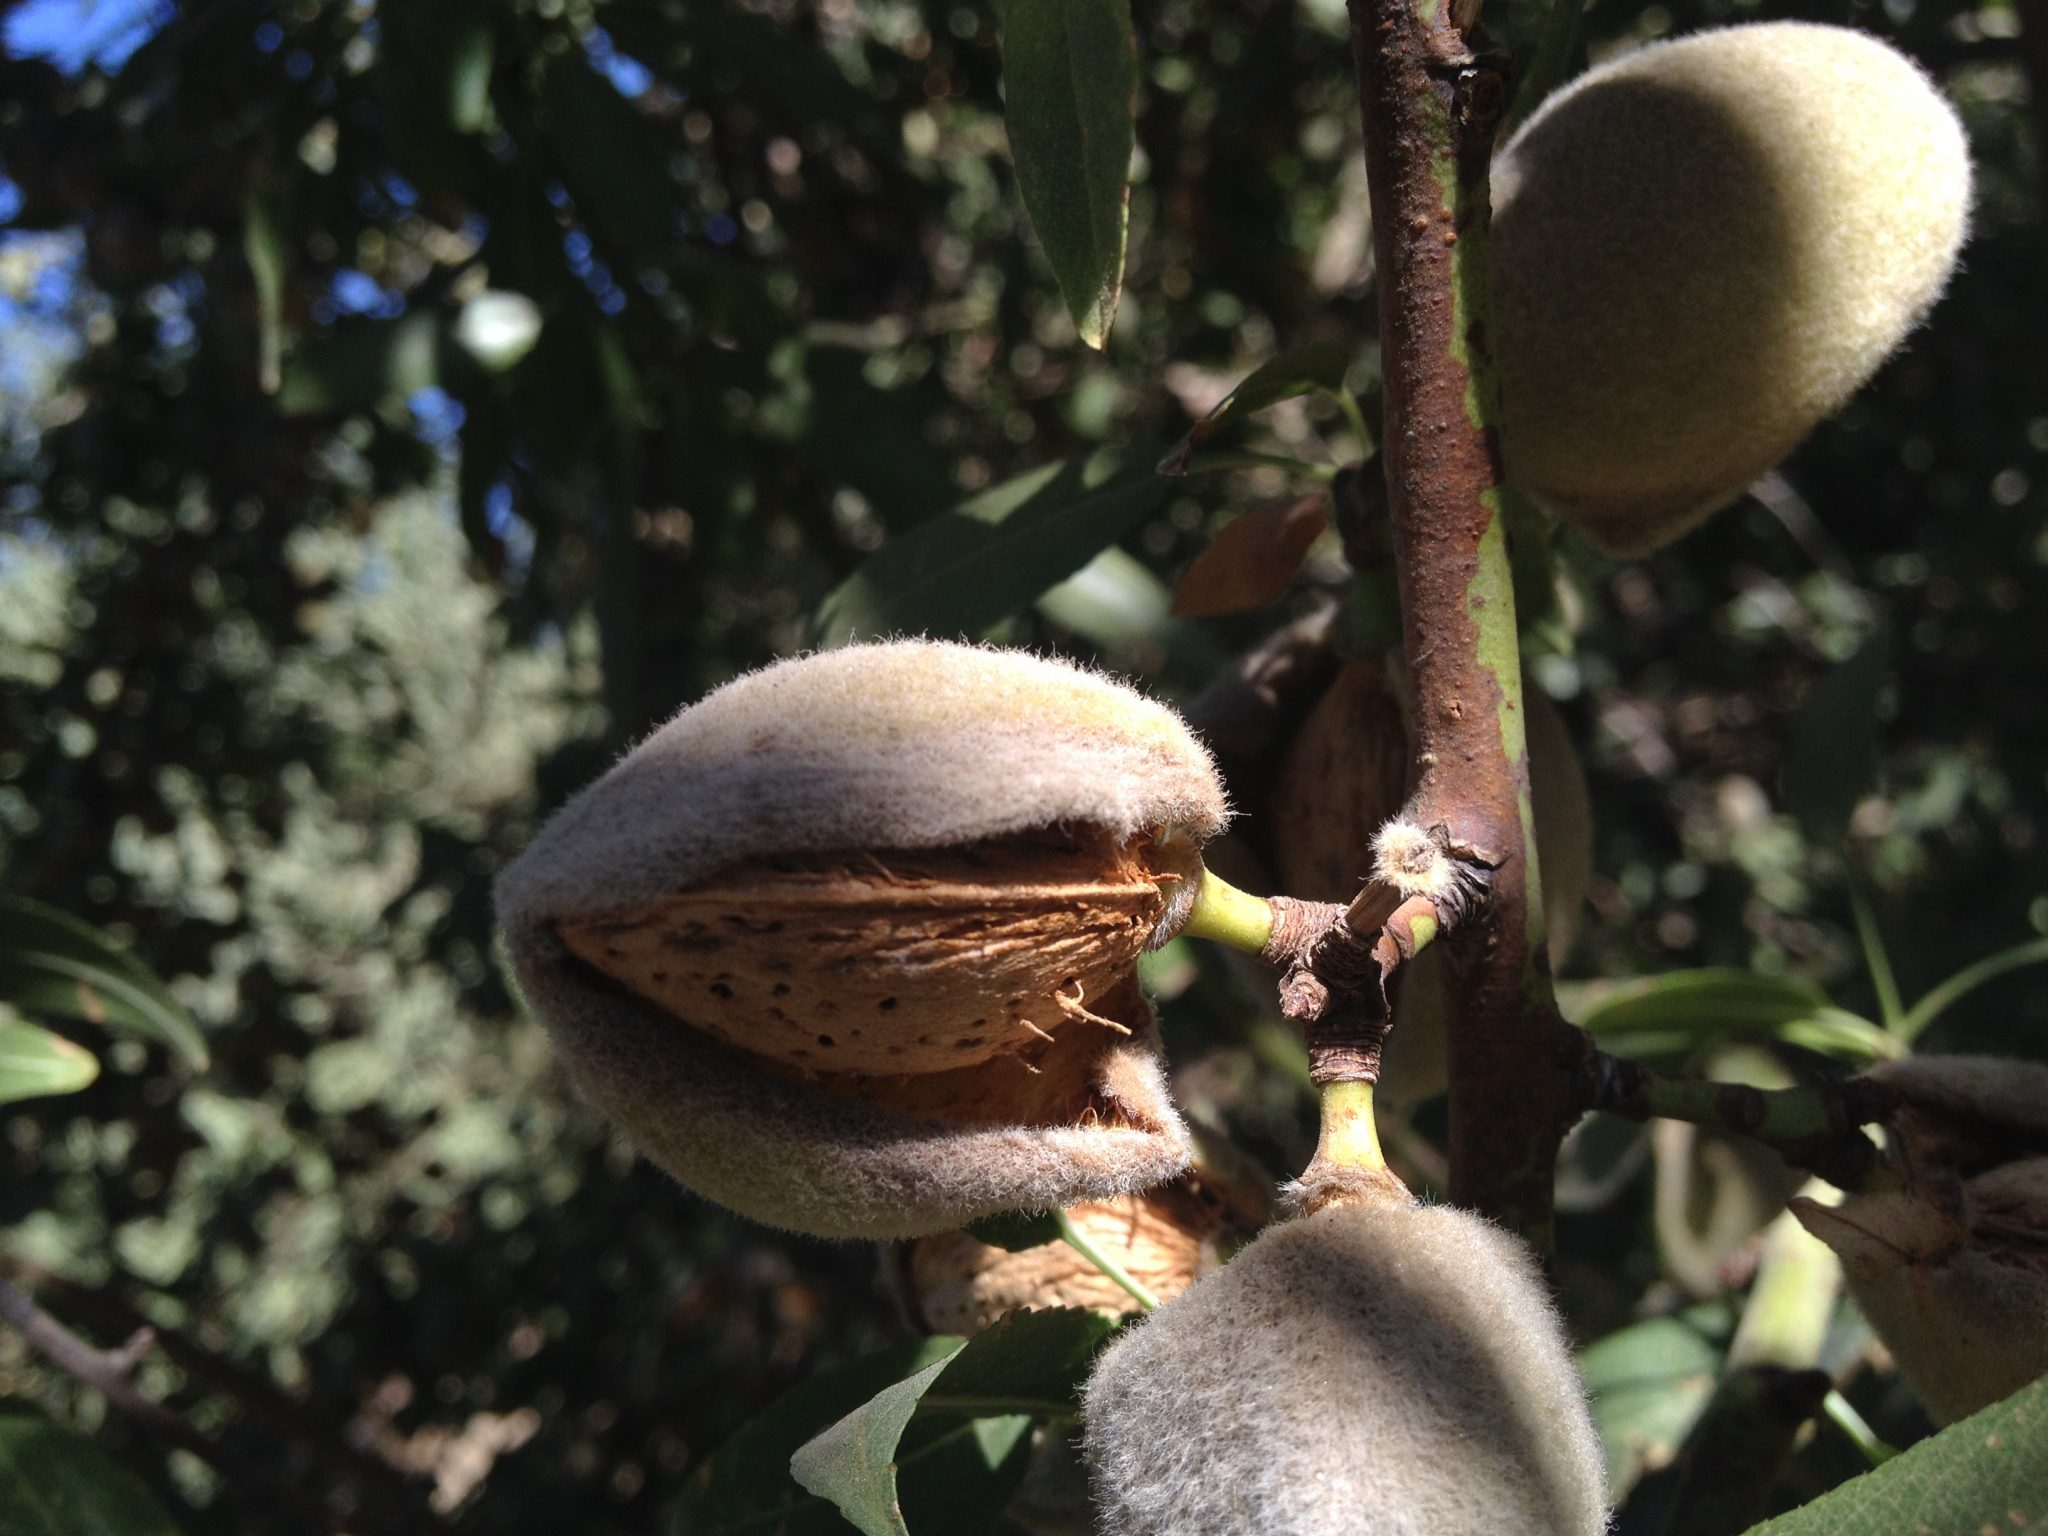 Who knew this is how almonds grow?